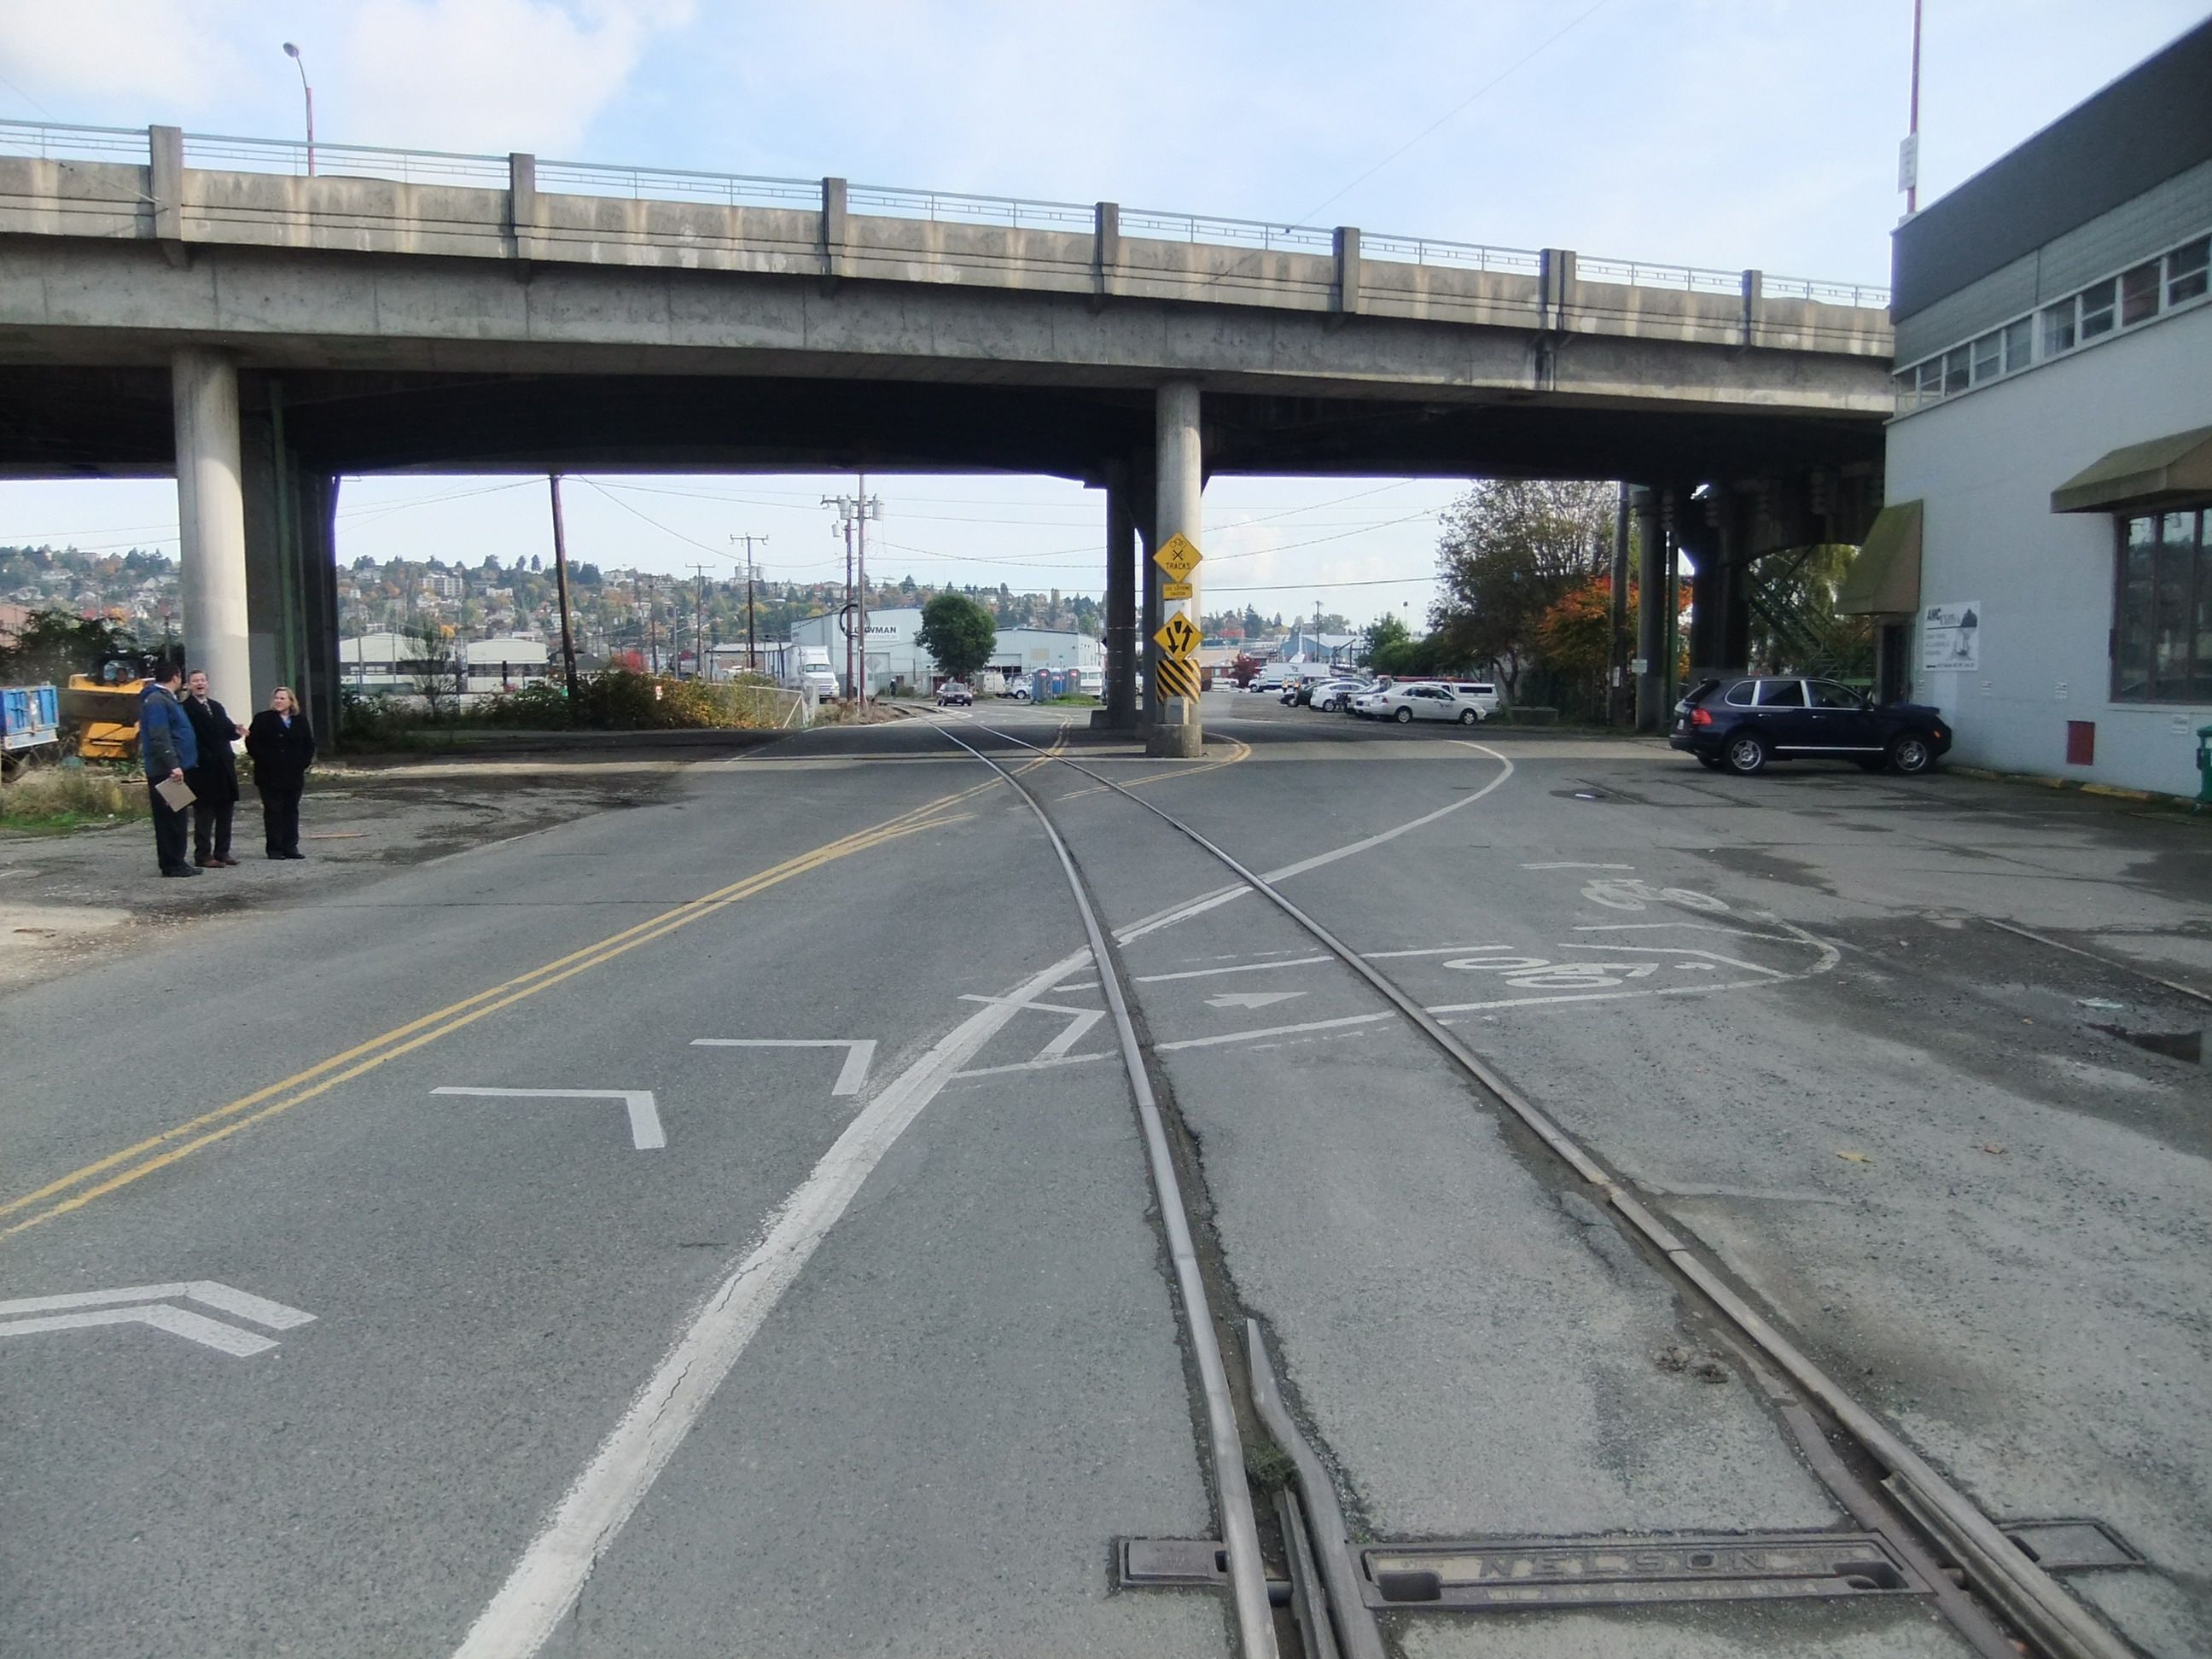 burke-gilman trail bicycle accident